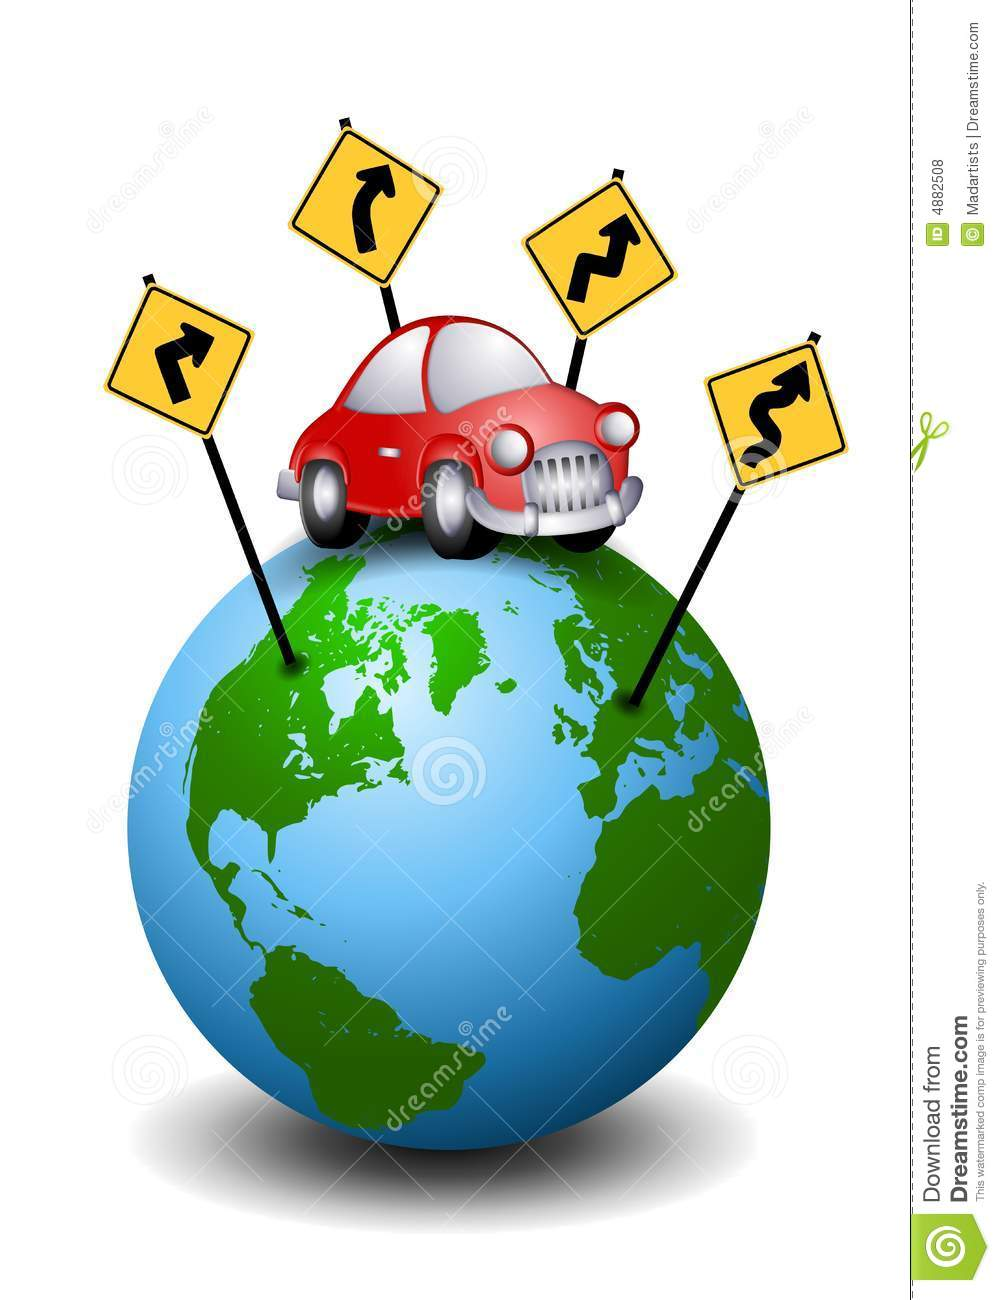 Road Trip Travel Directions Stock Vector - Illustration of